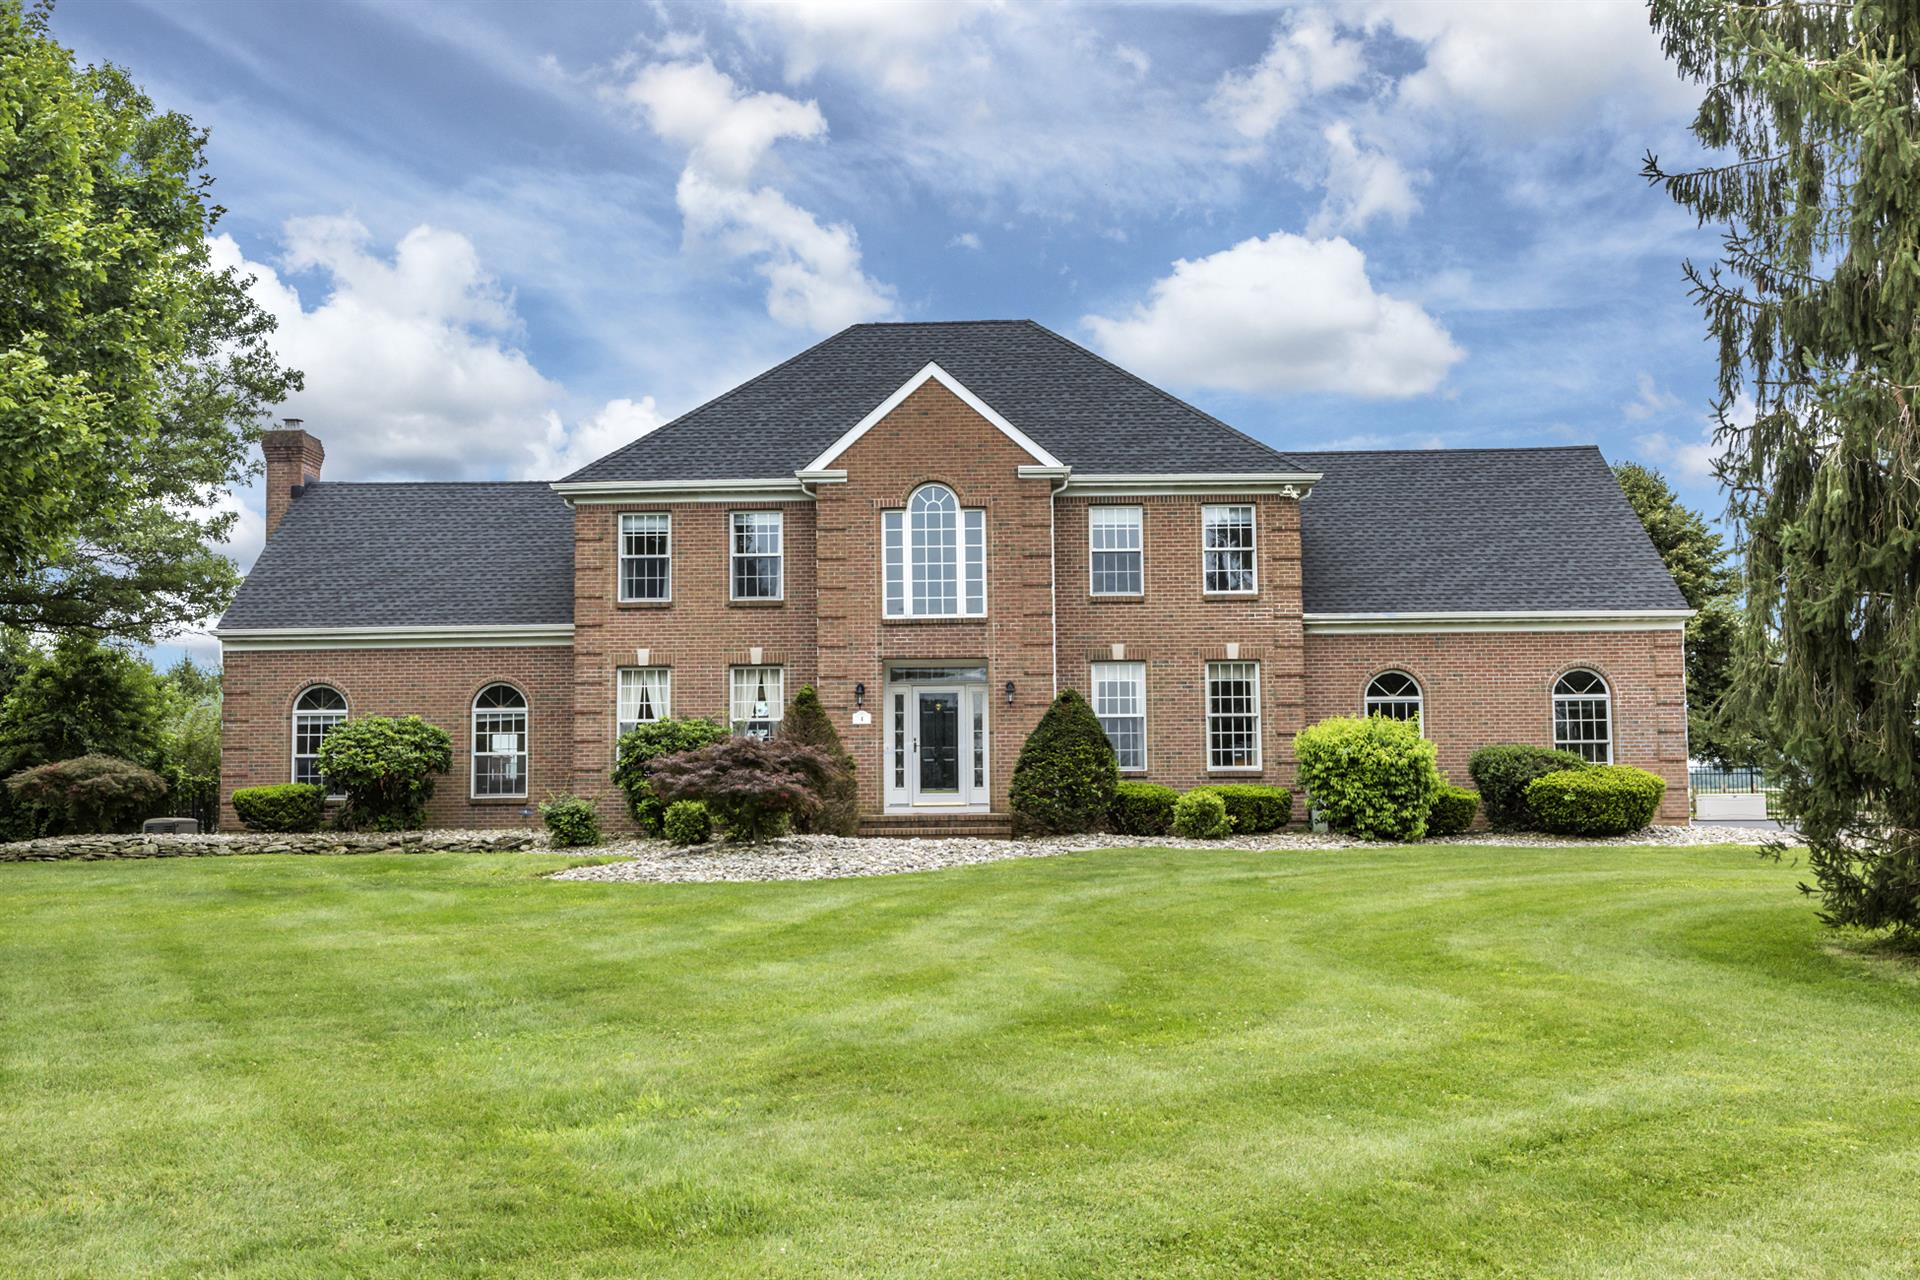 Additional photo for property listing at 4 Harbourton Woodsville Road  Pennington, New Jersey États-Unis